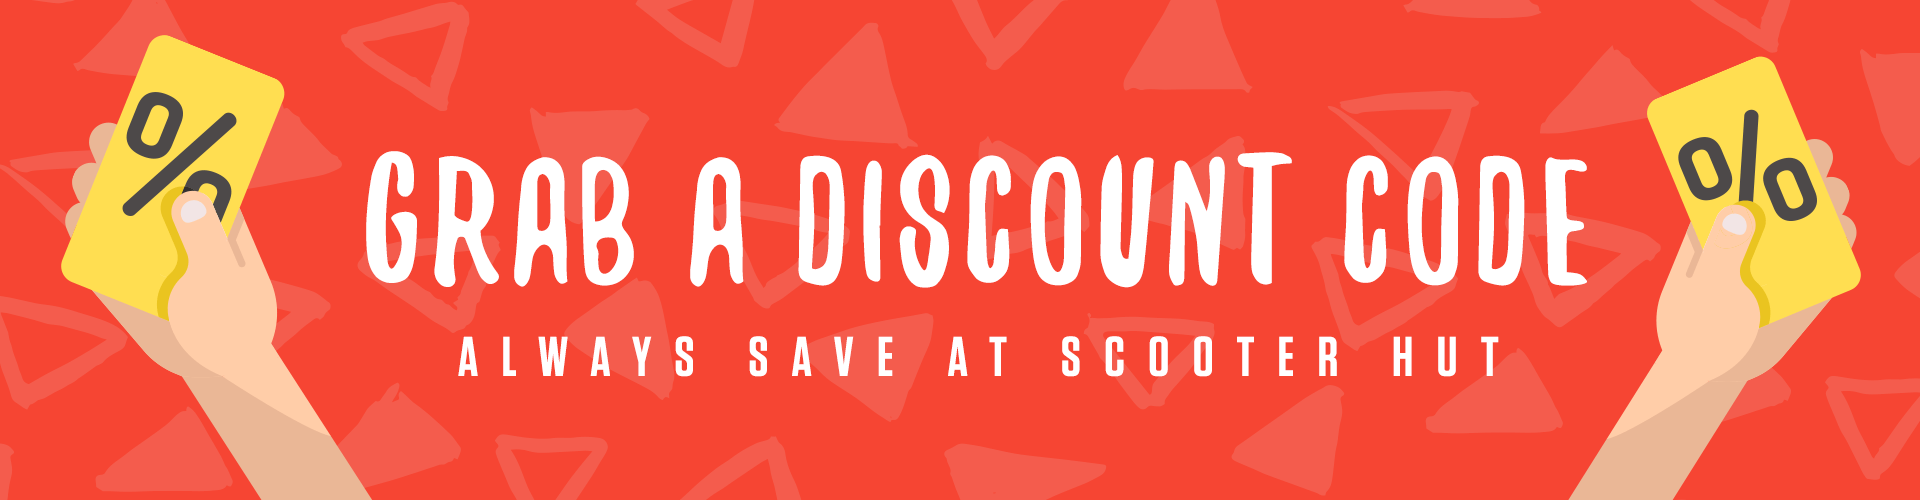 Grab a Discount Code at Scooter Hut